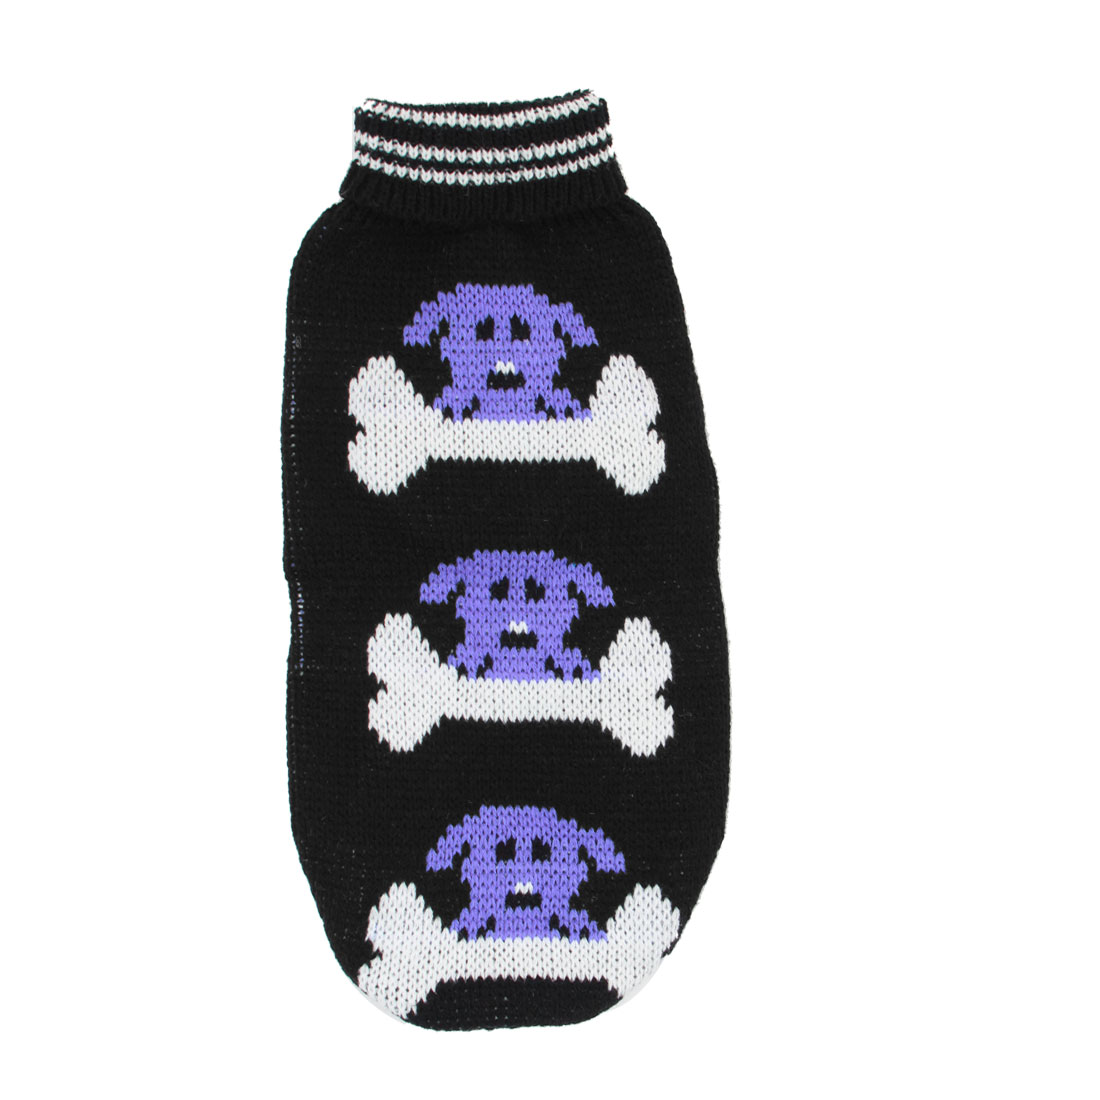 Pet Dog Puppy Ribbed Cuff Knitwear Turtleneck Apparel Sweater Black White Blue Size XS